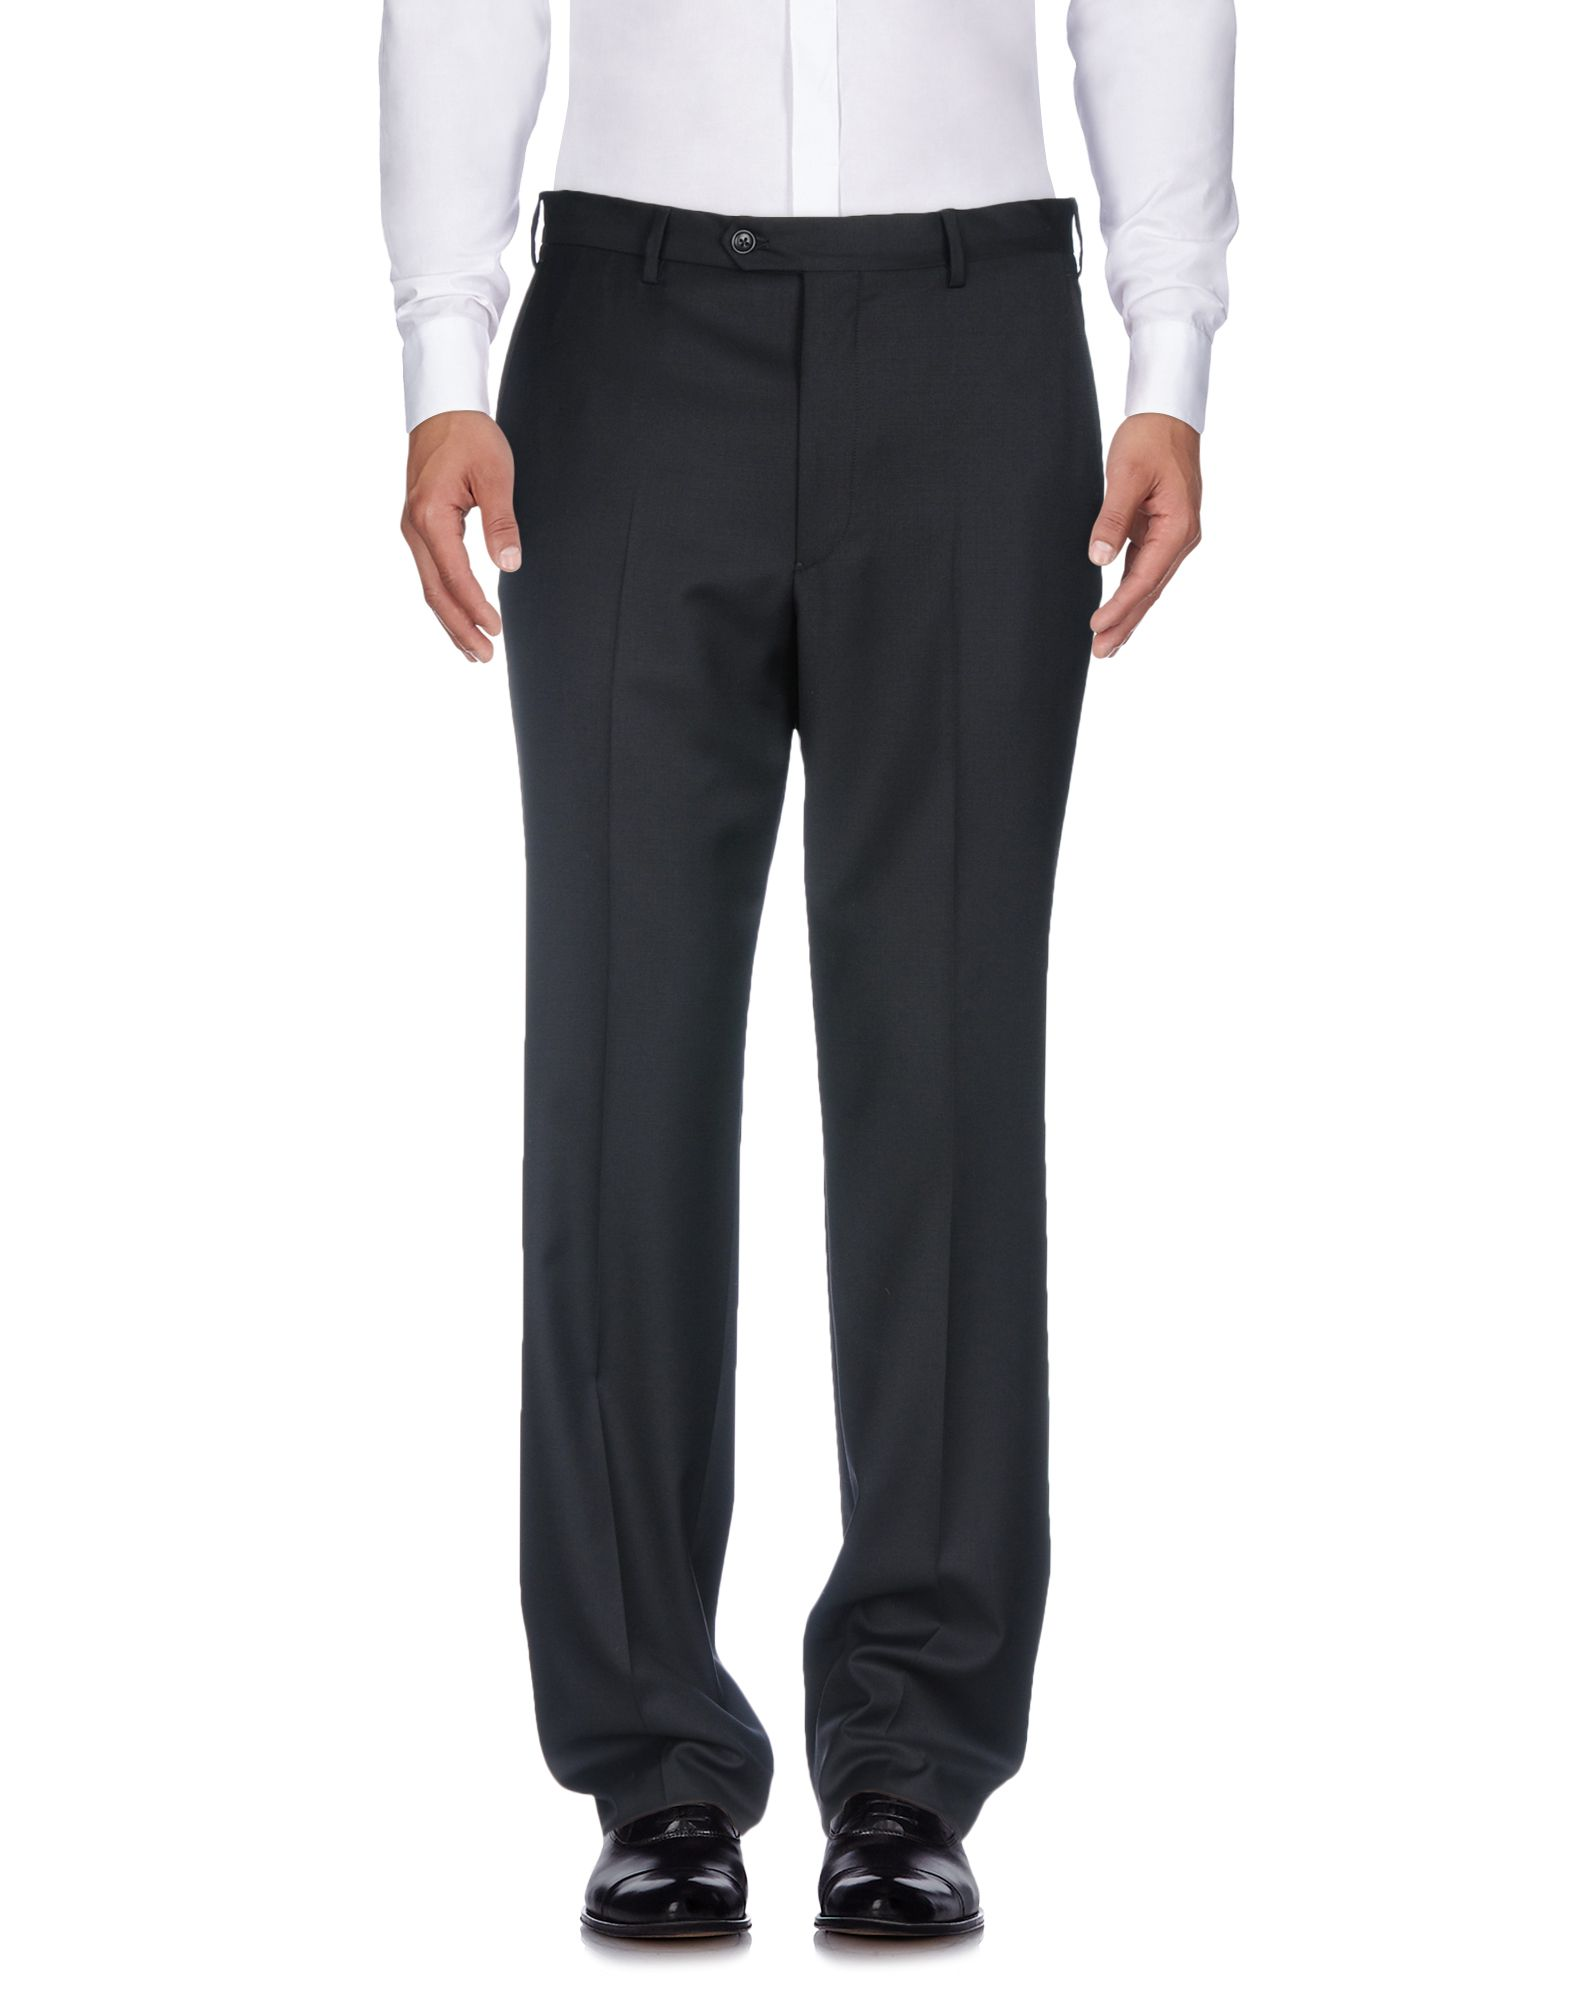 Pantalone Brooks Brothers Uomo - Acquista online su